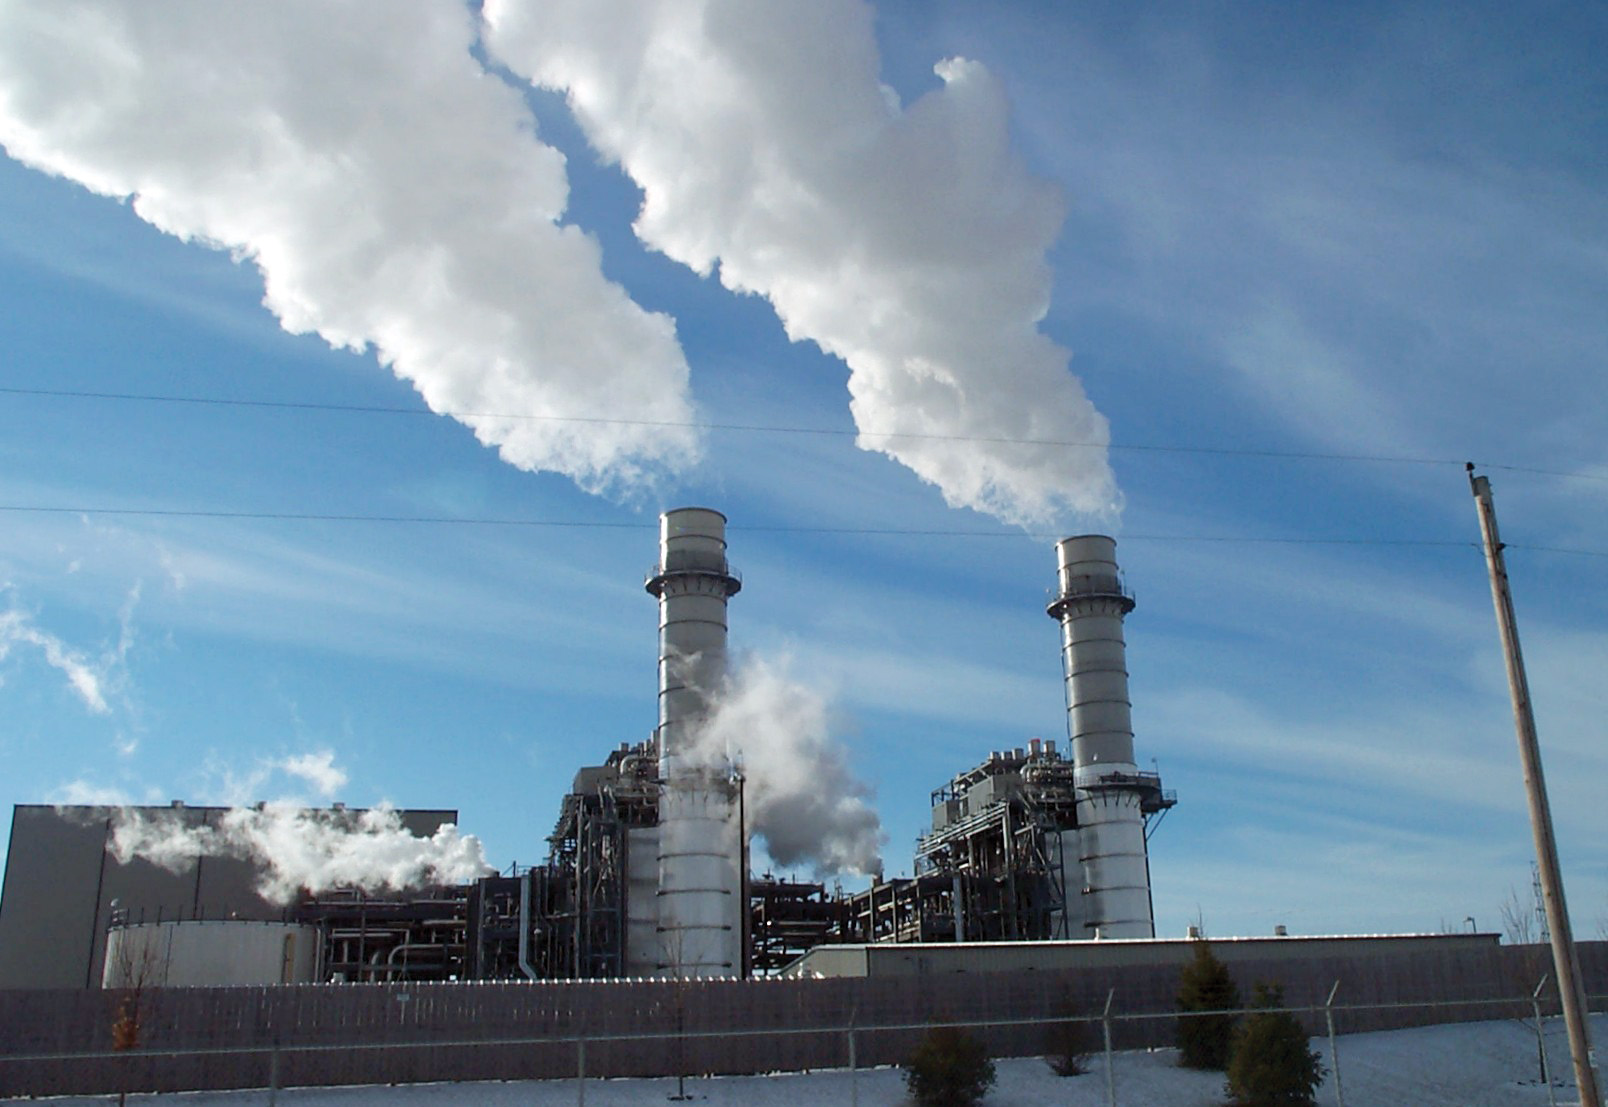 Wisconsin Power & Light paid $392 million to acquire the 600-MW Riverside combined-cycle plant from Calpine.